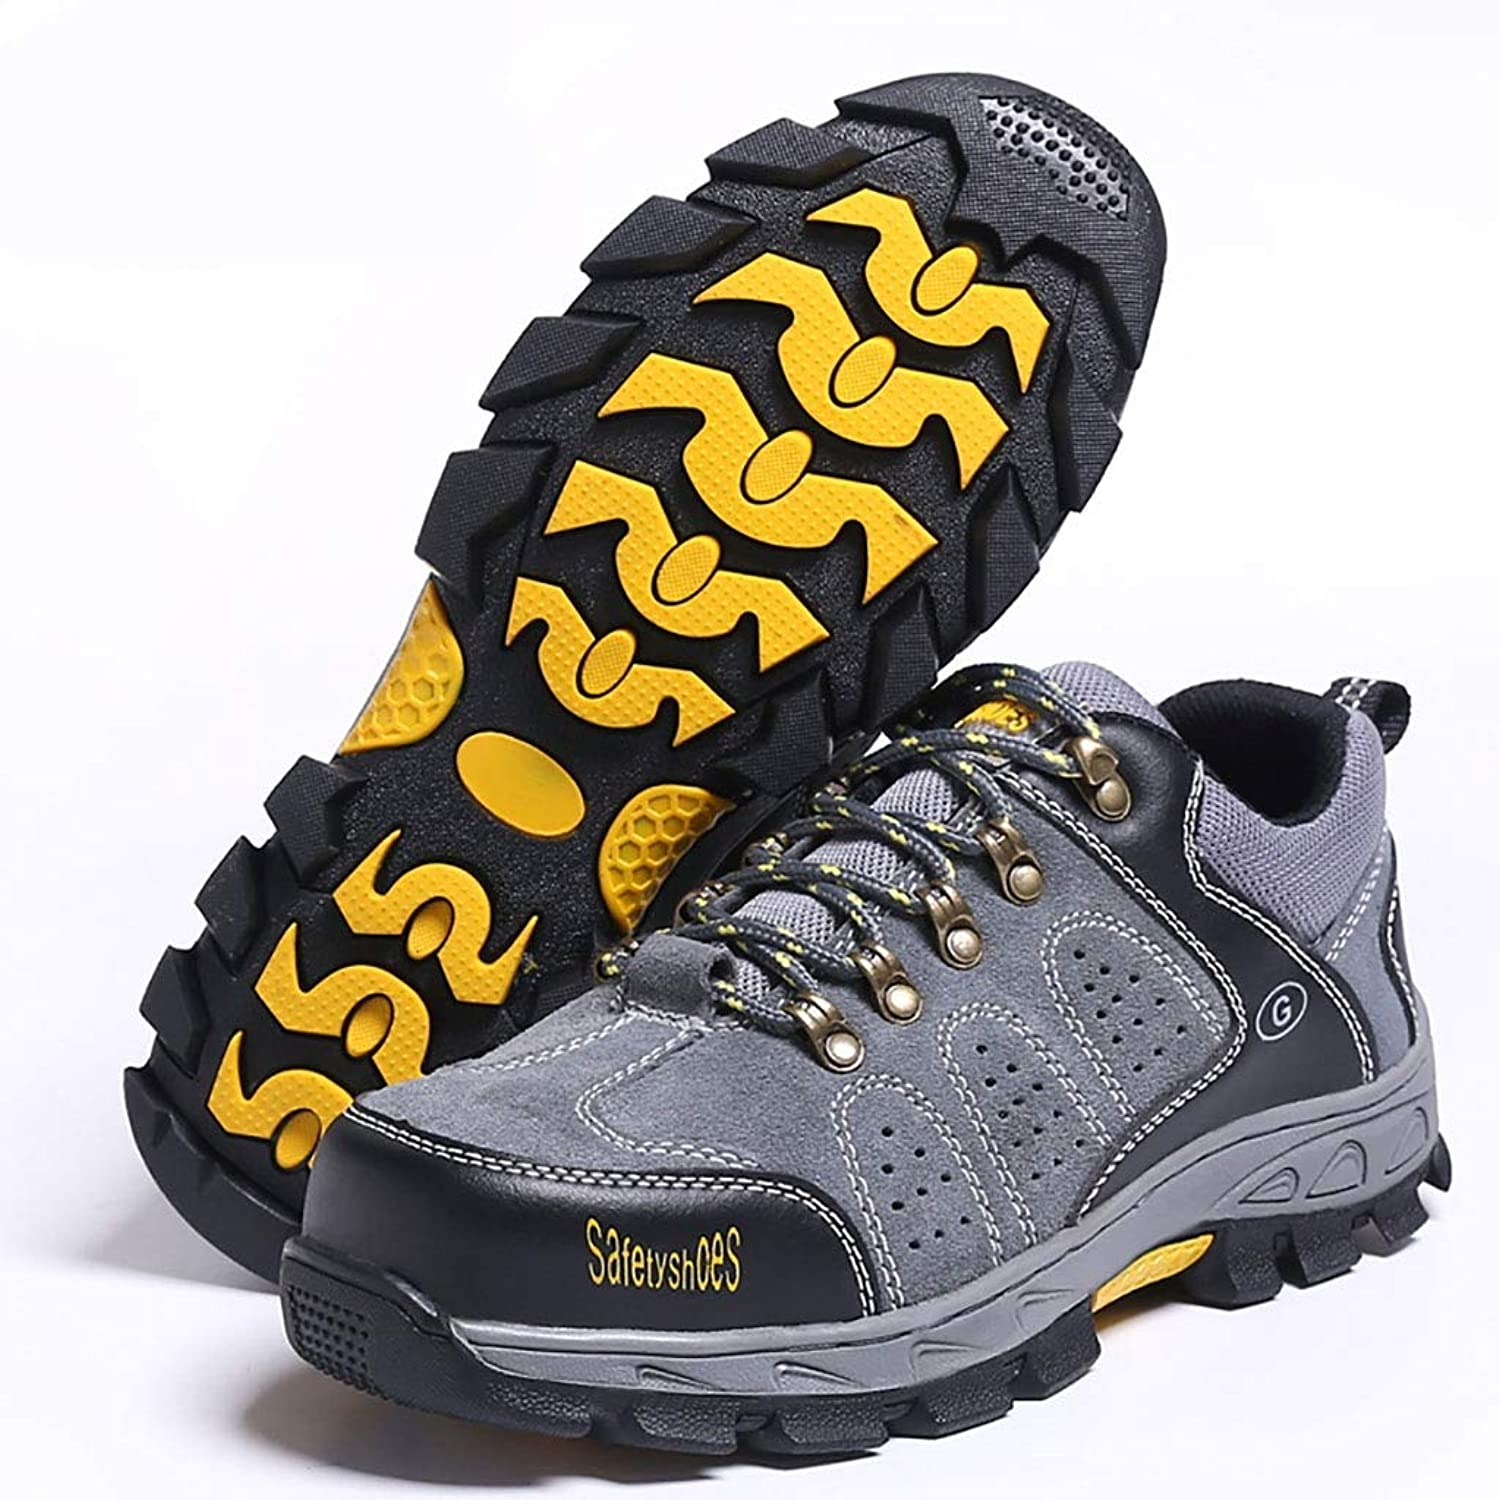 ZYFXZ Work shoes Men's steel toe cap work safety shoes, anti-mite puncture work shoes, breathable deodorant anti-skid shoes safety shoes (color   B, Size   44)